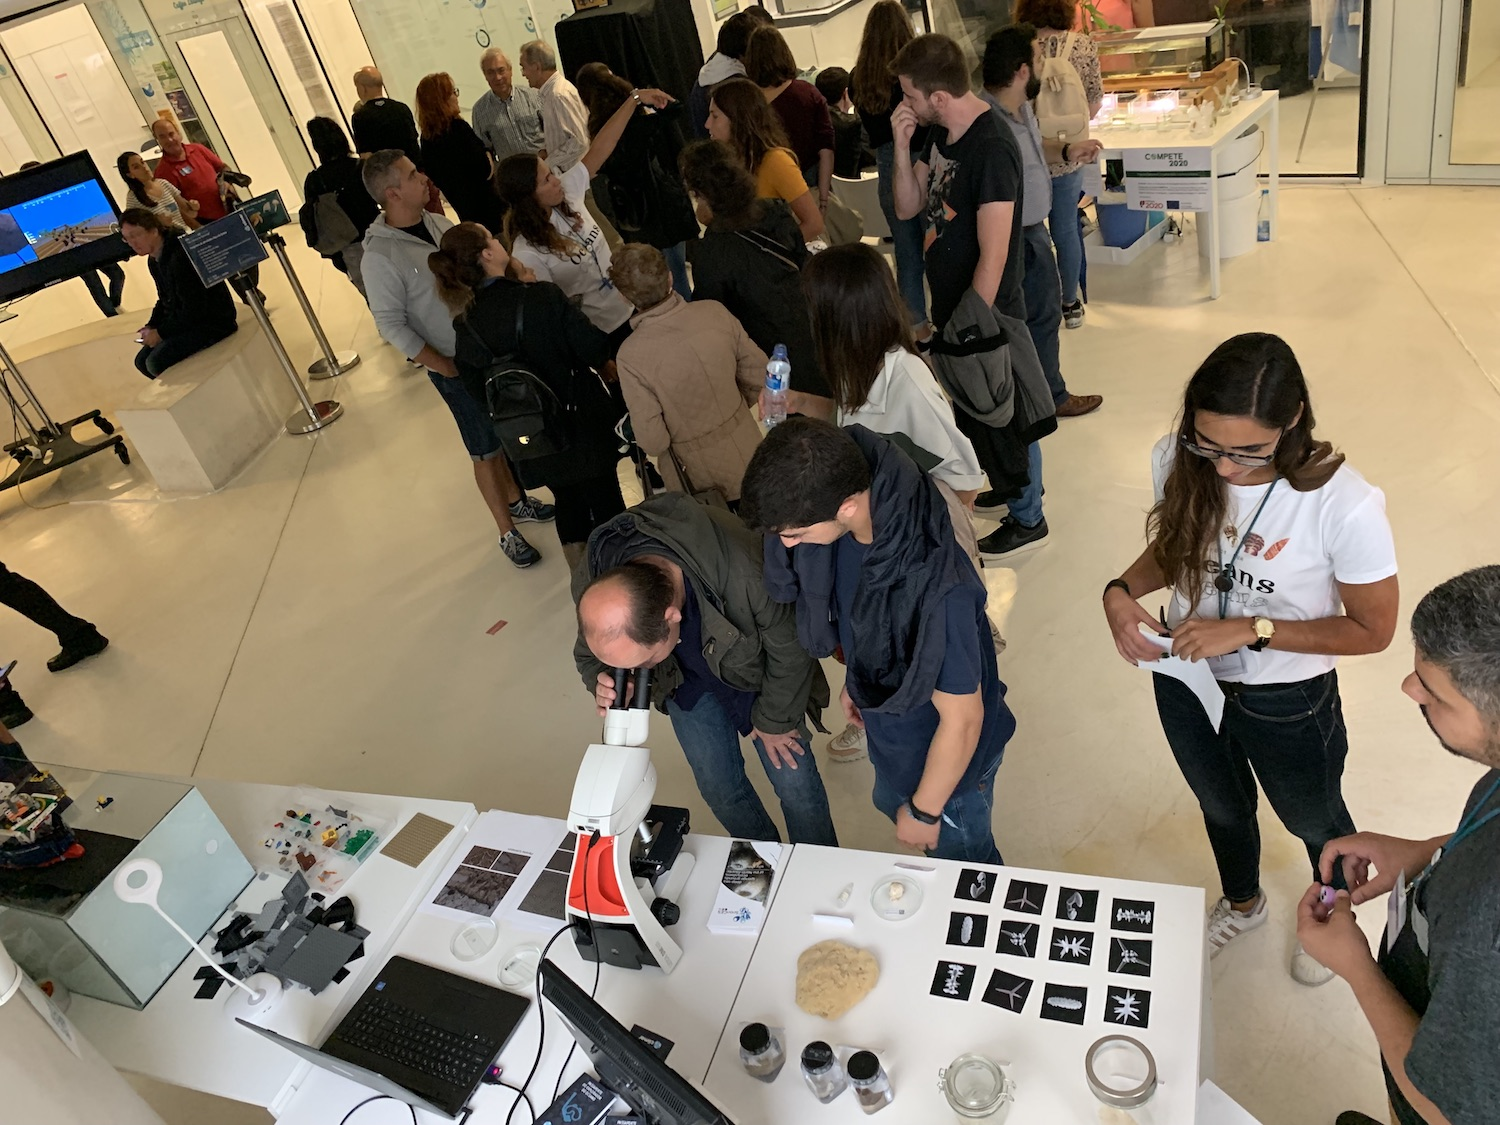 The Annual Open Day at CIIMAR